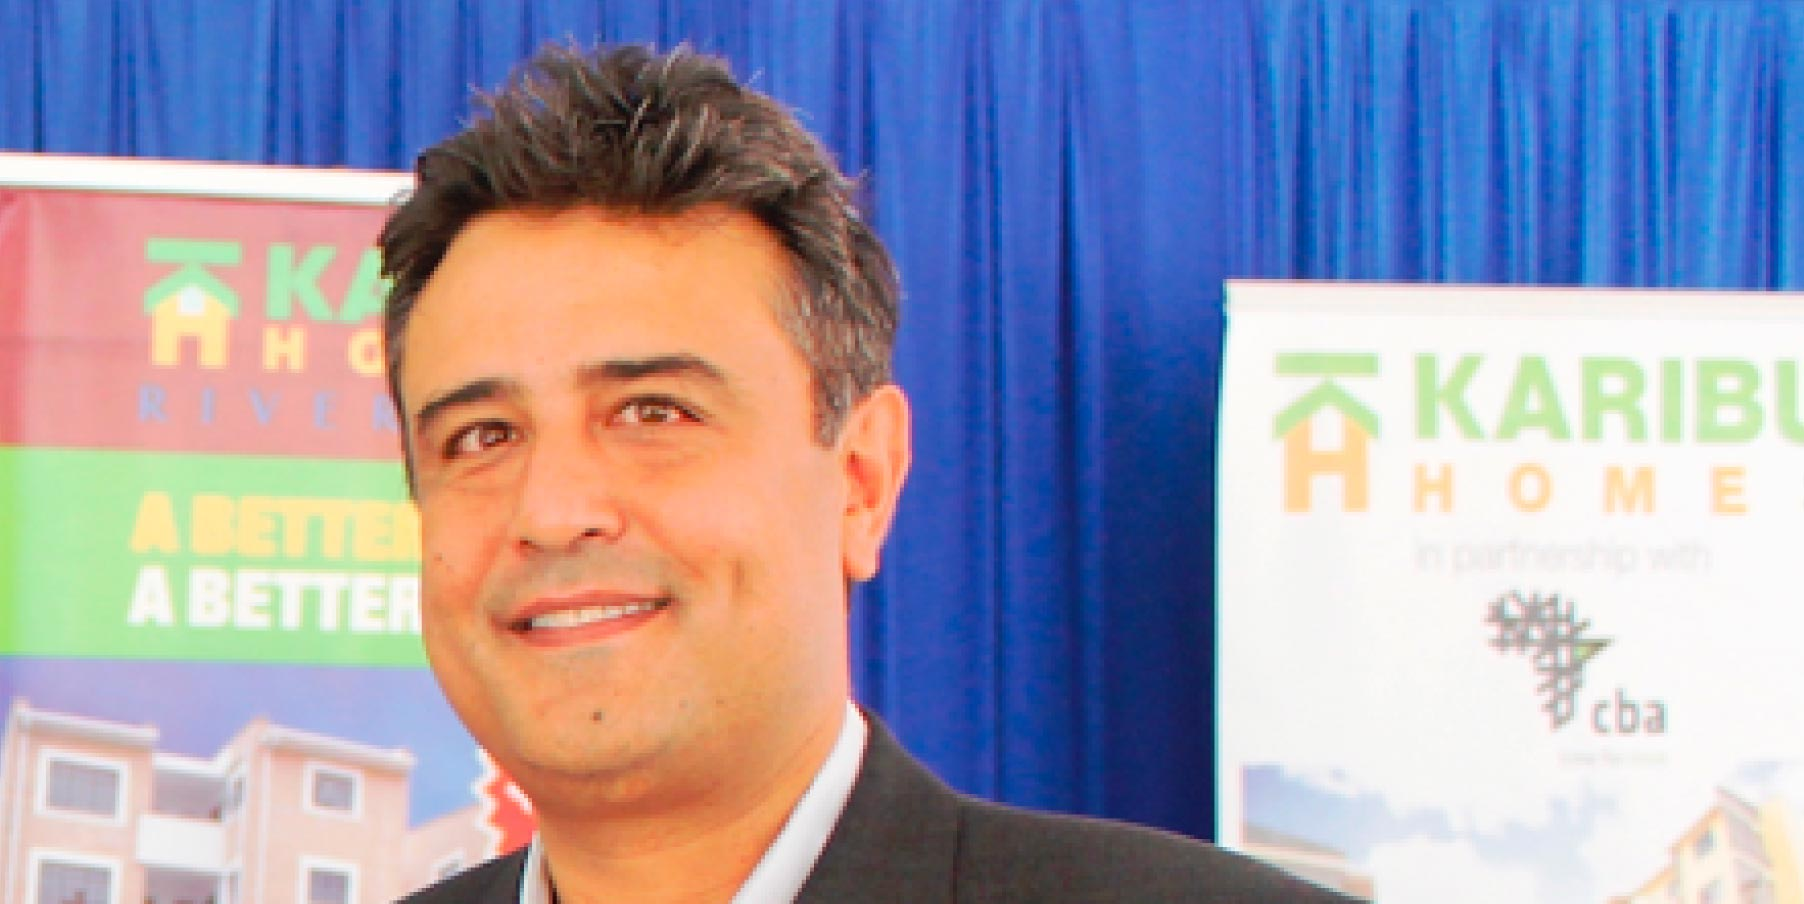 Developing affordable housing in Kenya: Businessman on lessons learnt